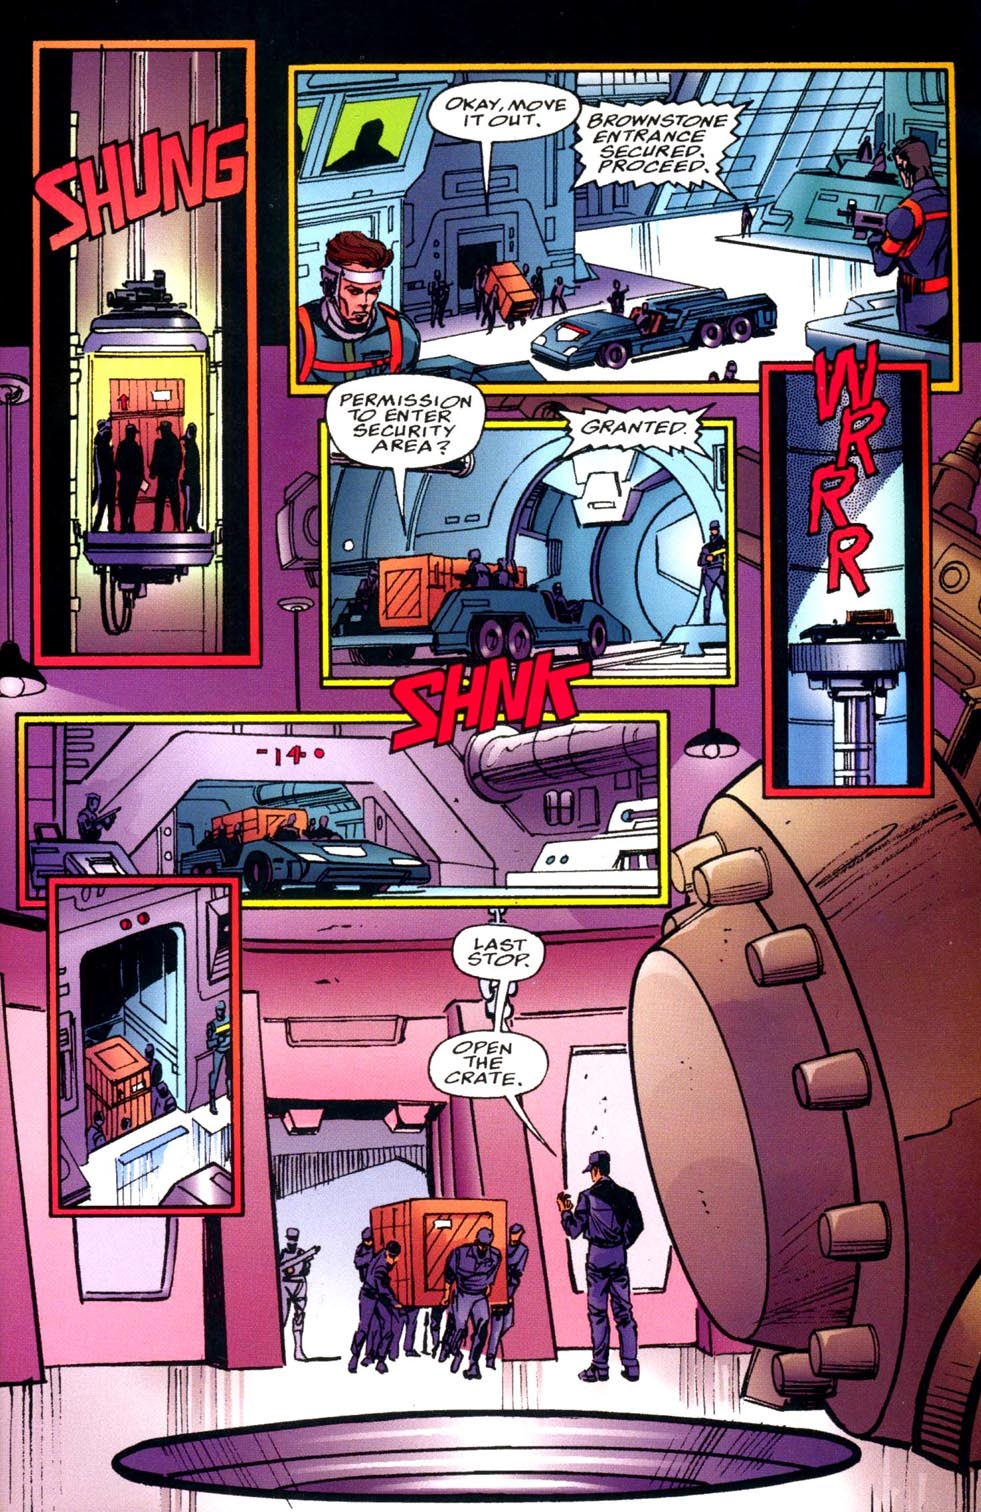 Read online Double Edge comic -  Issue # Issue Alpha - 7